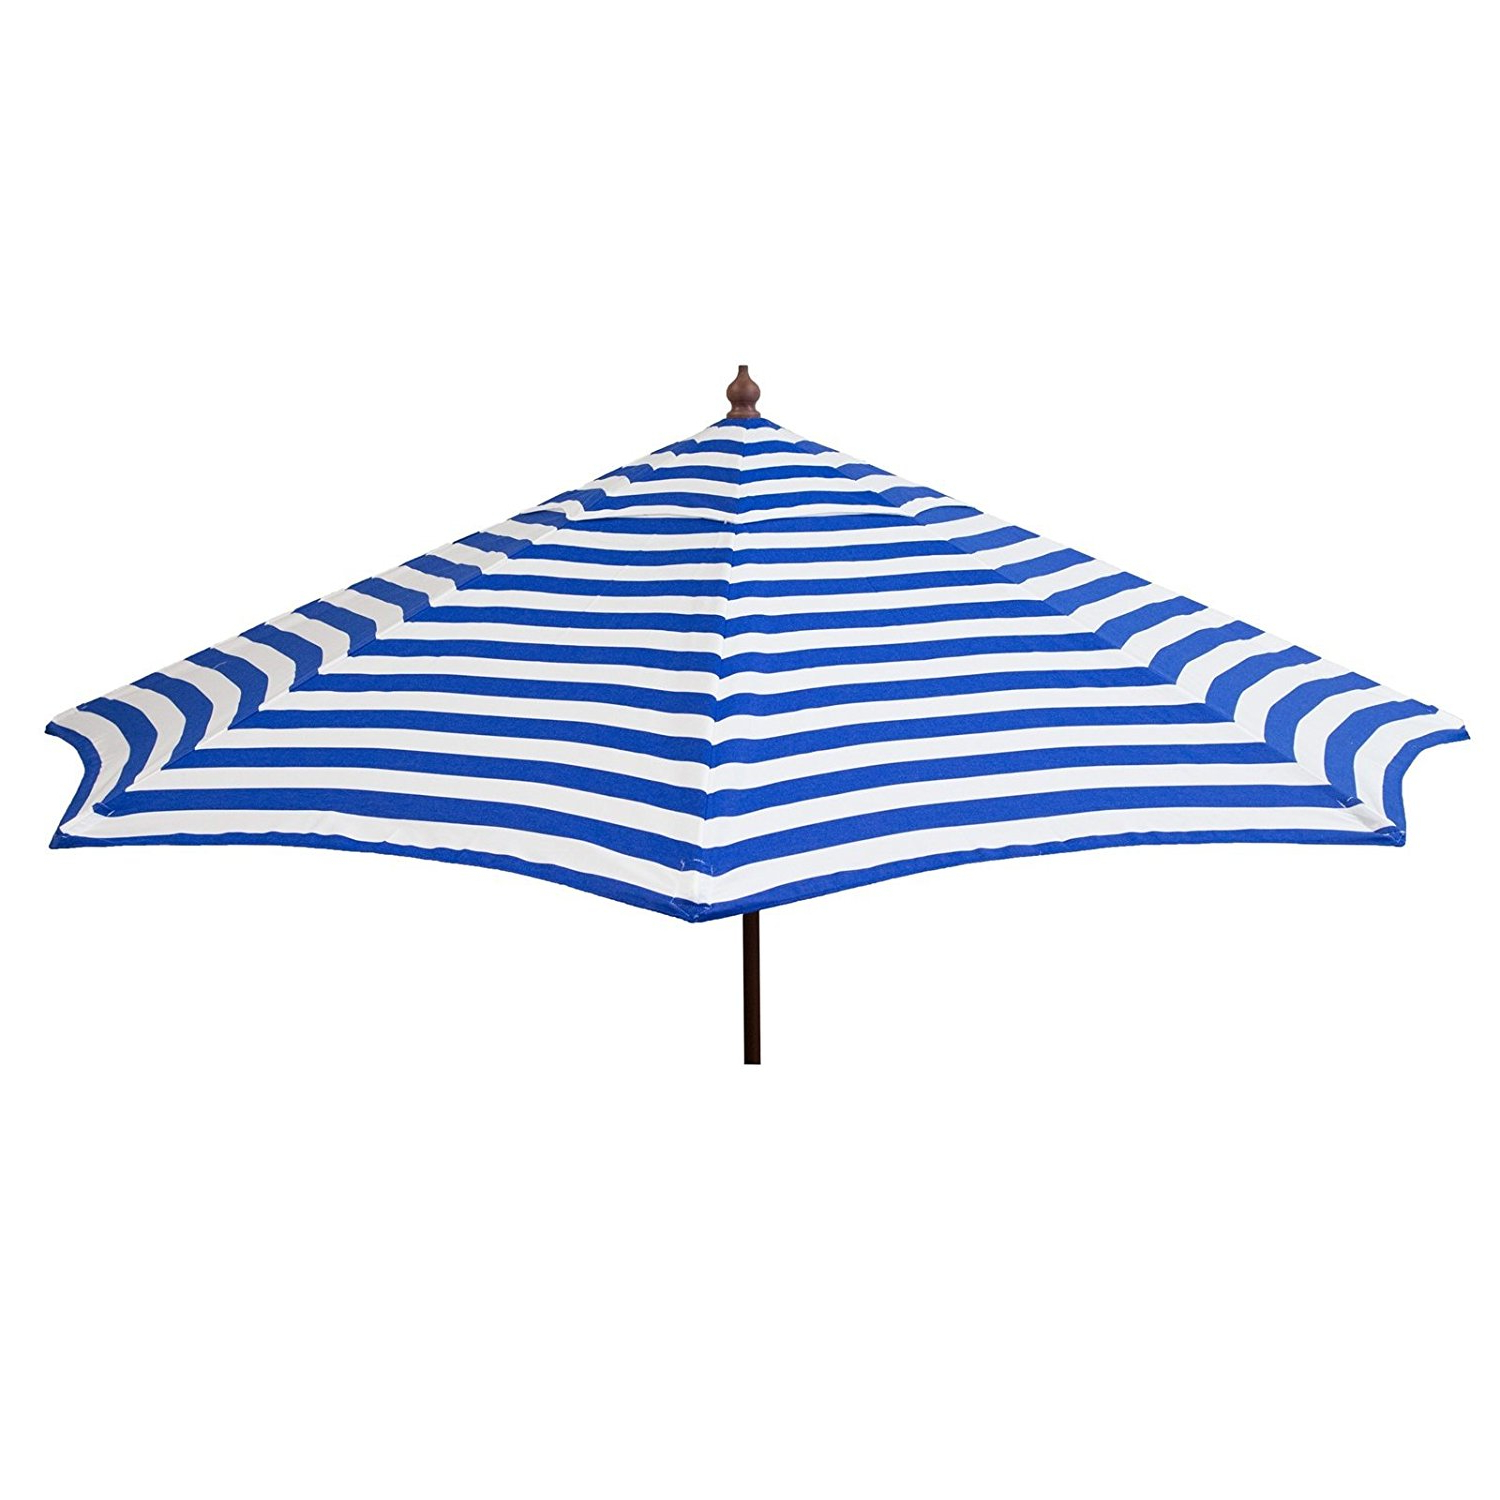 Buy 9ft Tilt Italian Market Umbrella Home Patio Canopy Sun Shelter Throughout Well Known Italian Market Umbrellas (View 14 of 20)